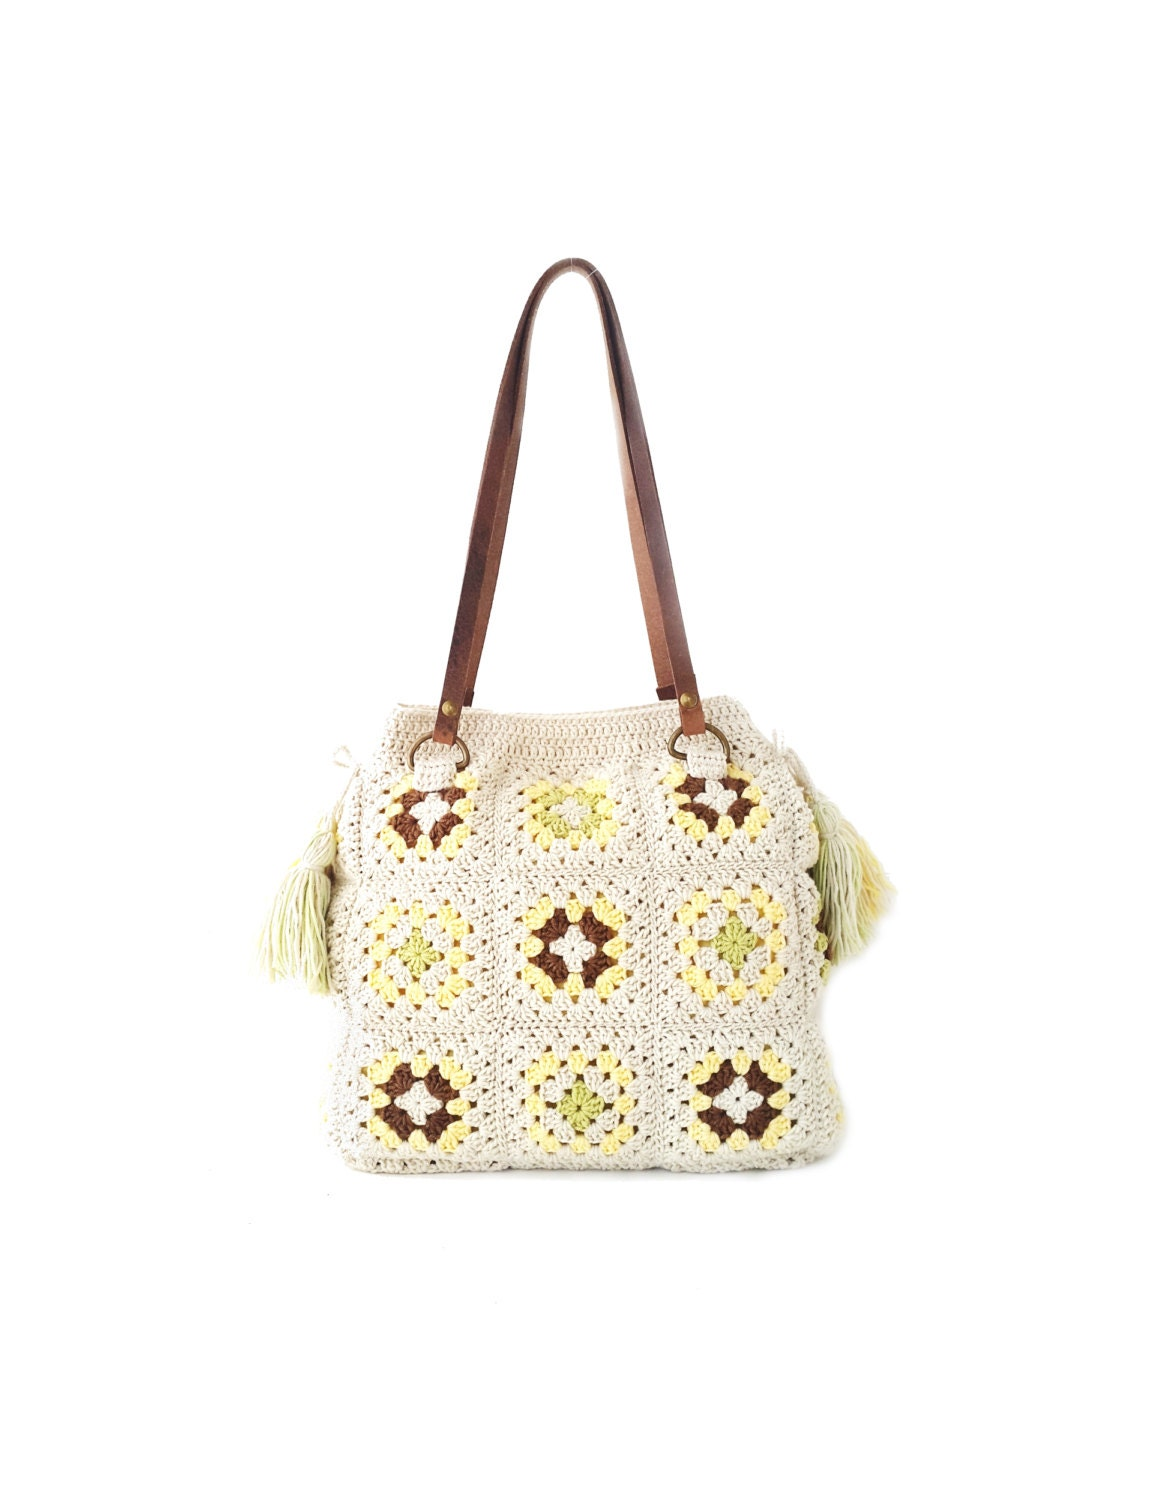 Leather Crochet Bag : Cream crochet bag with tassels real leather handles by zolayka